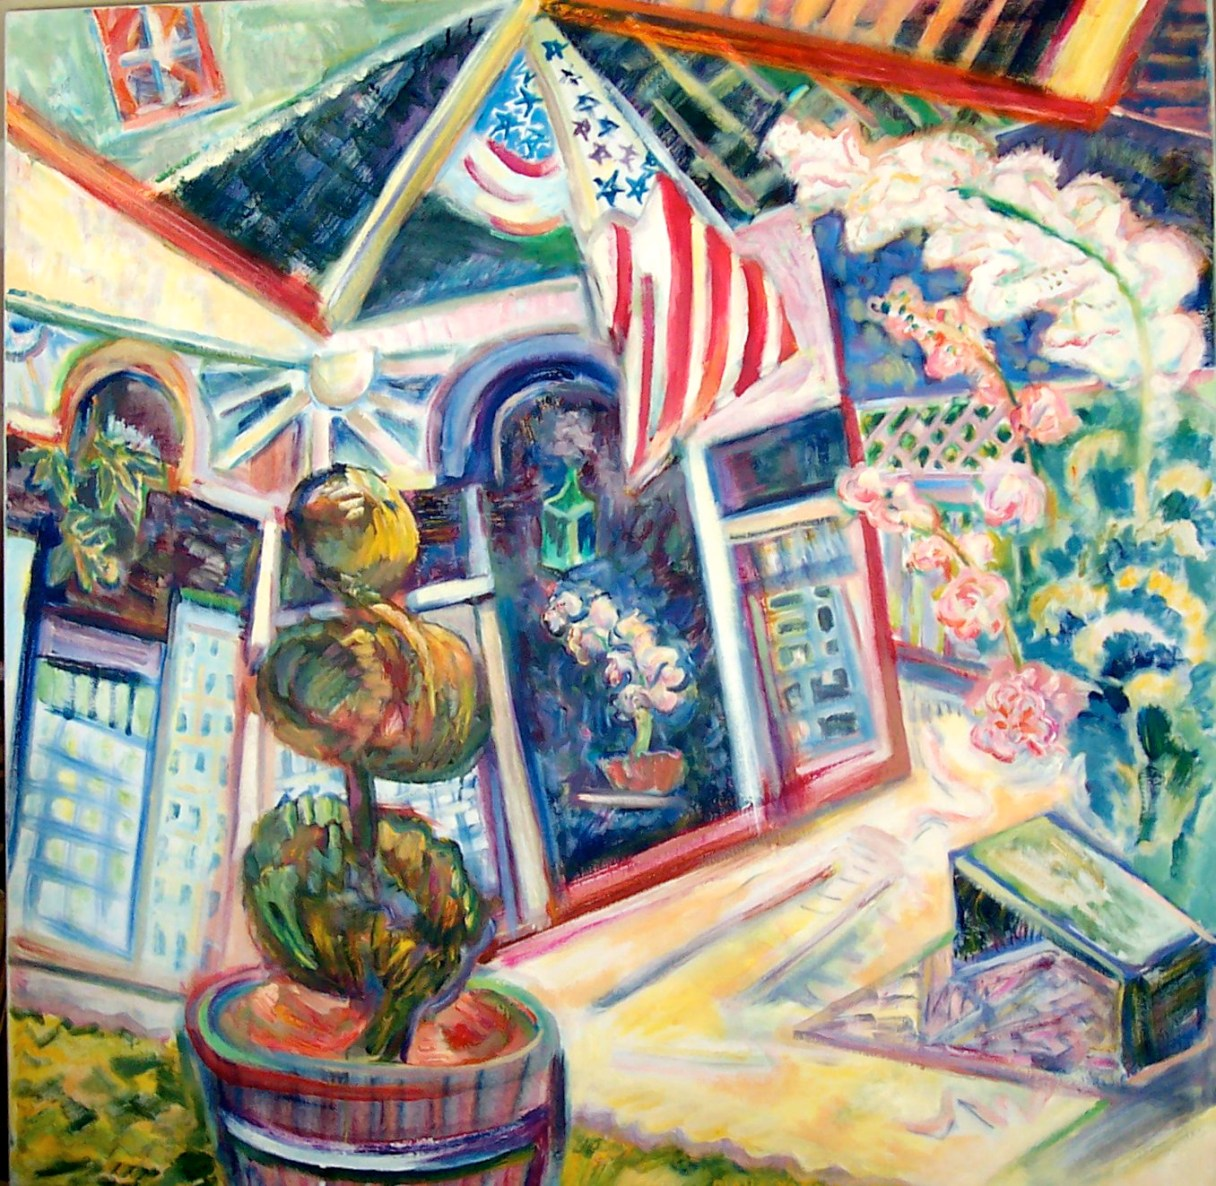 Enter Here, 2007, Diana Young, American b. 1936, 40 x 40 inches, acrylic on canvas, $2,850